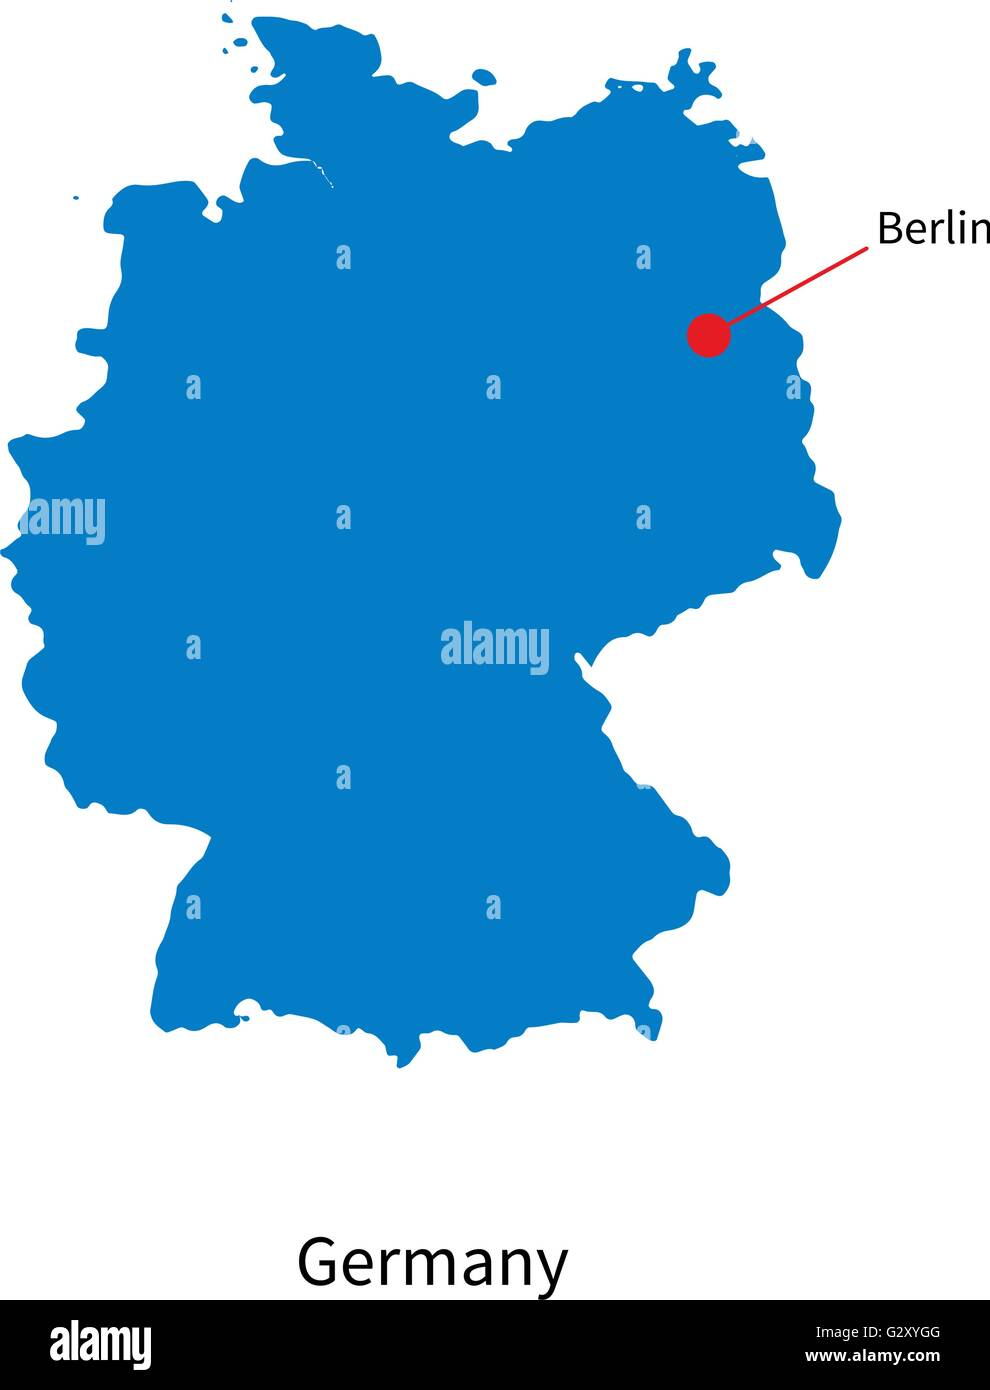 Detailed Vector Map Of Germany And Capital City Berlin Stock - Berlin map in germany